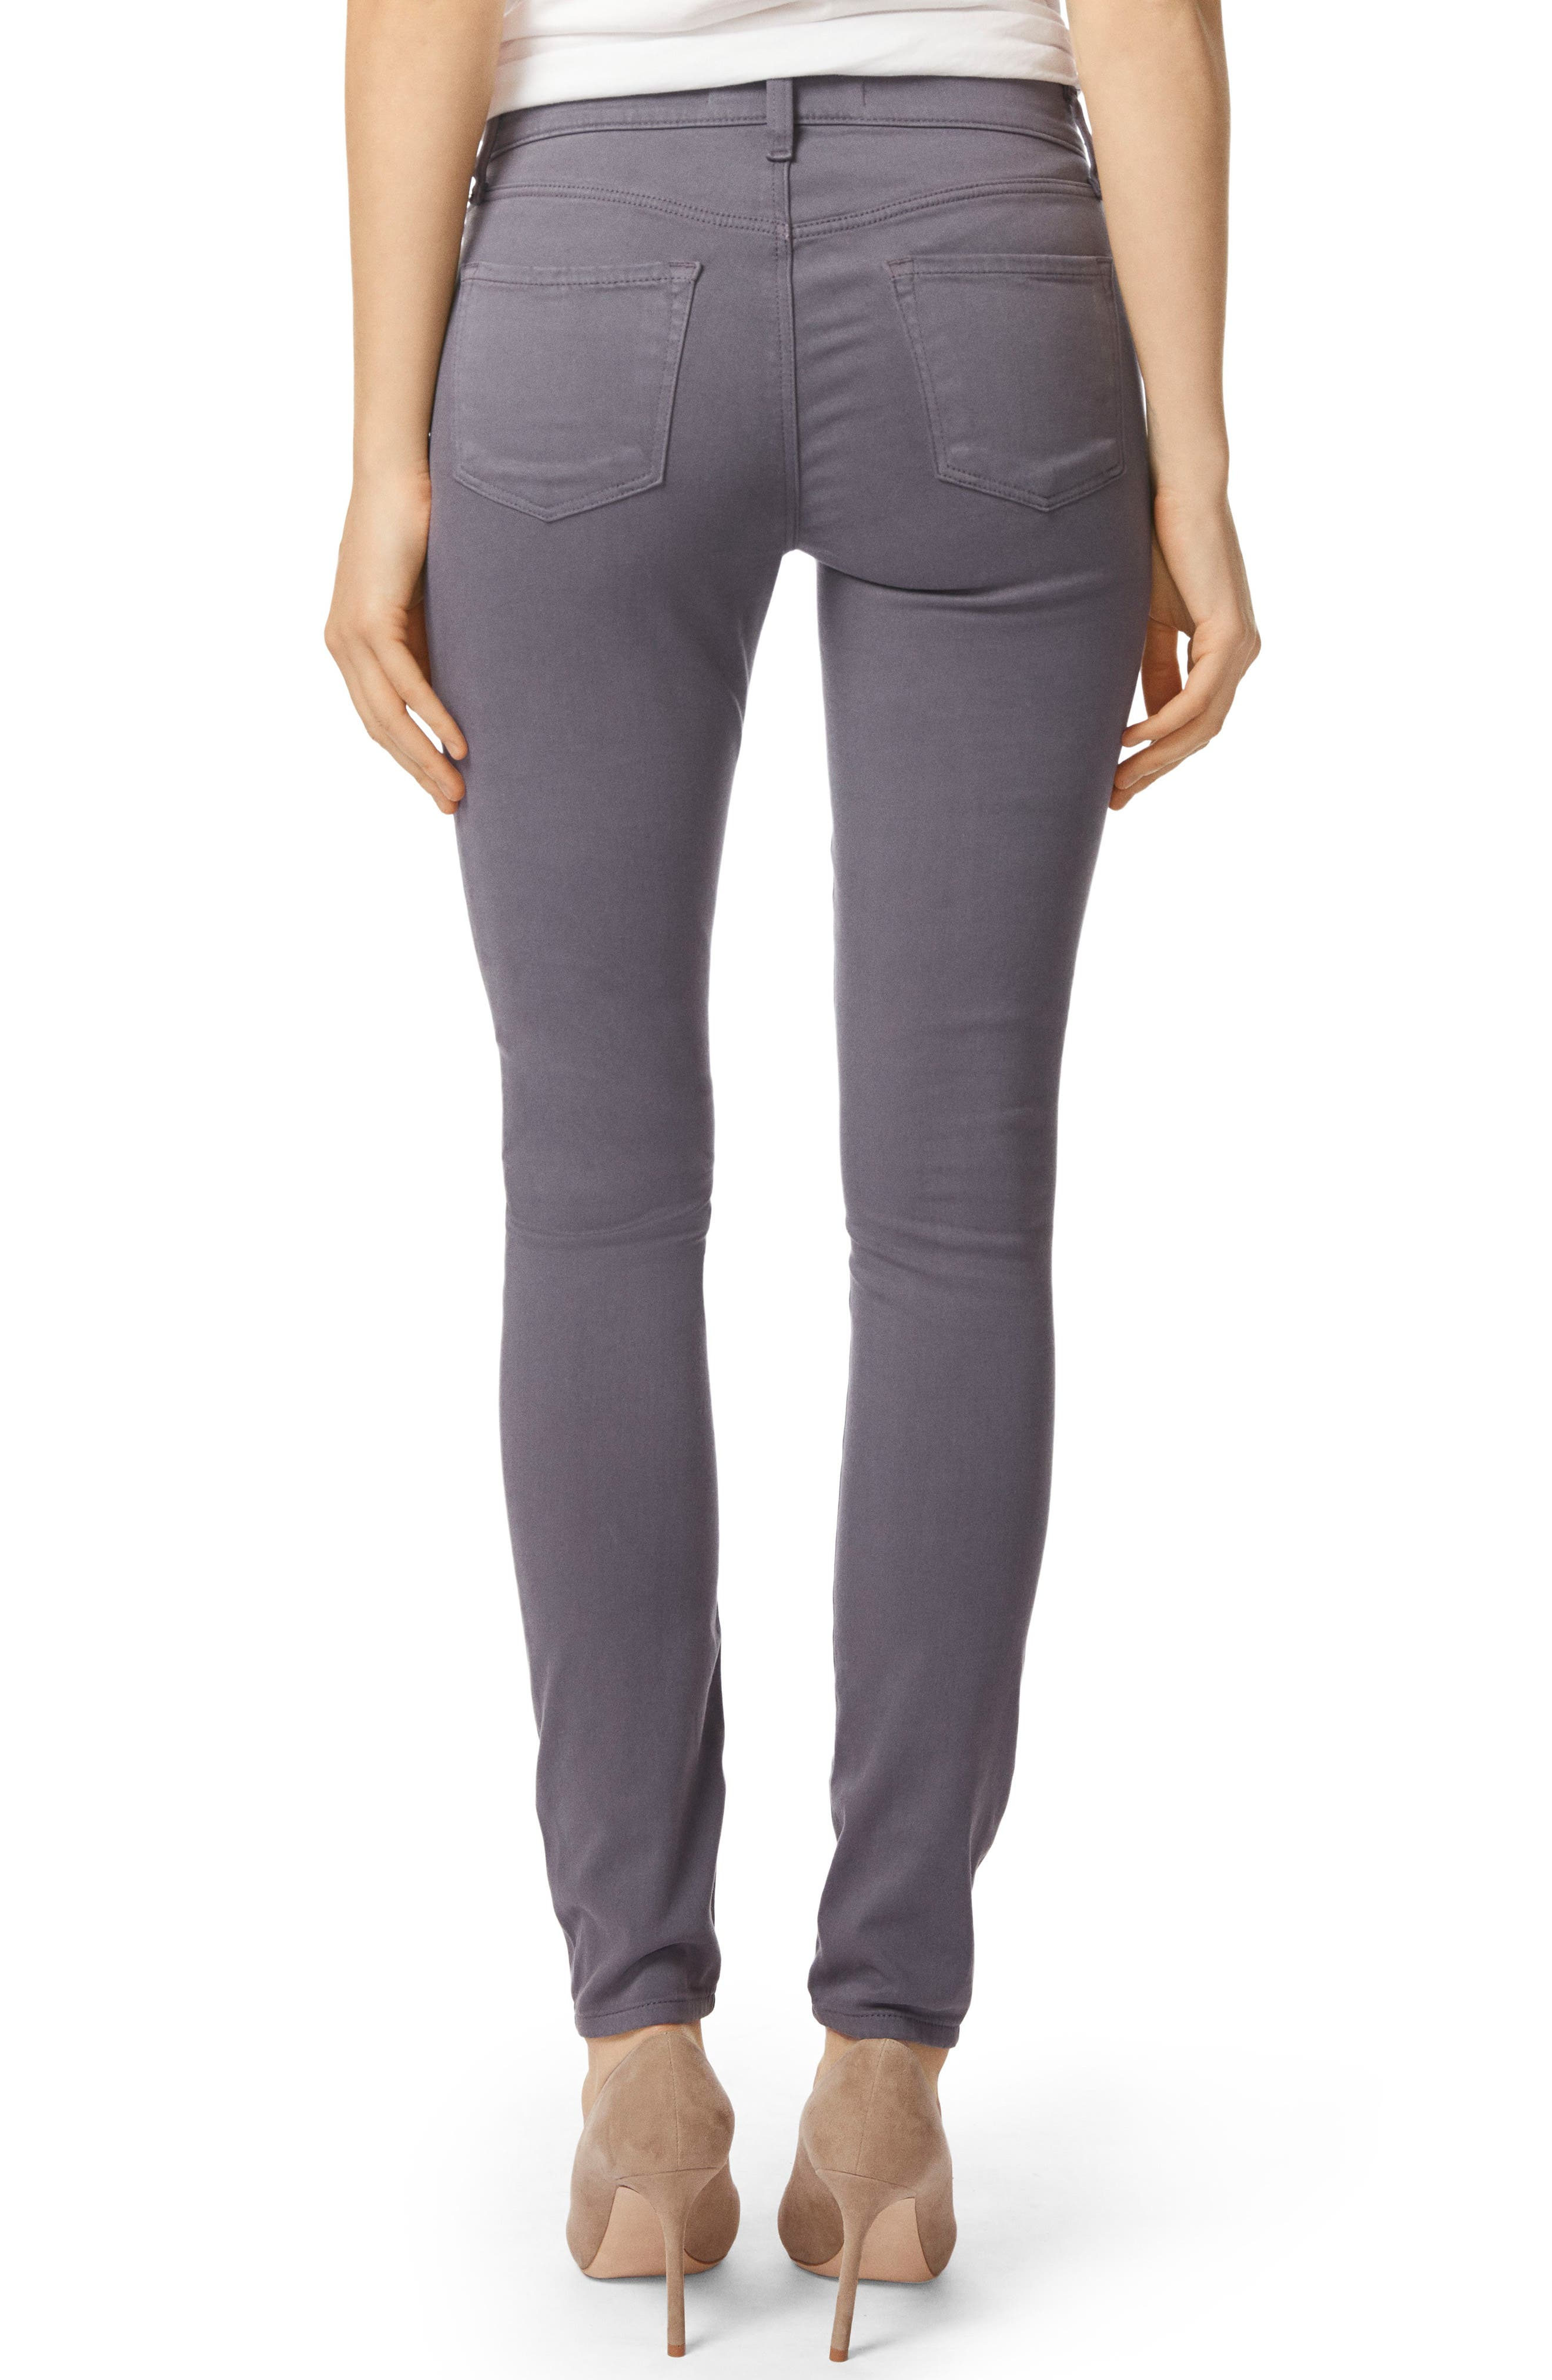 485 Mid Rise Skinny Jeans,                             Alternate thumbnail 2, color,                             VOLCANIC ASH